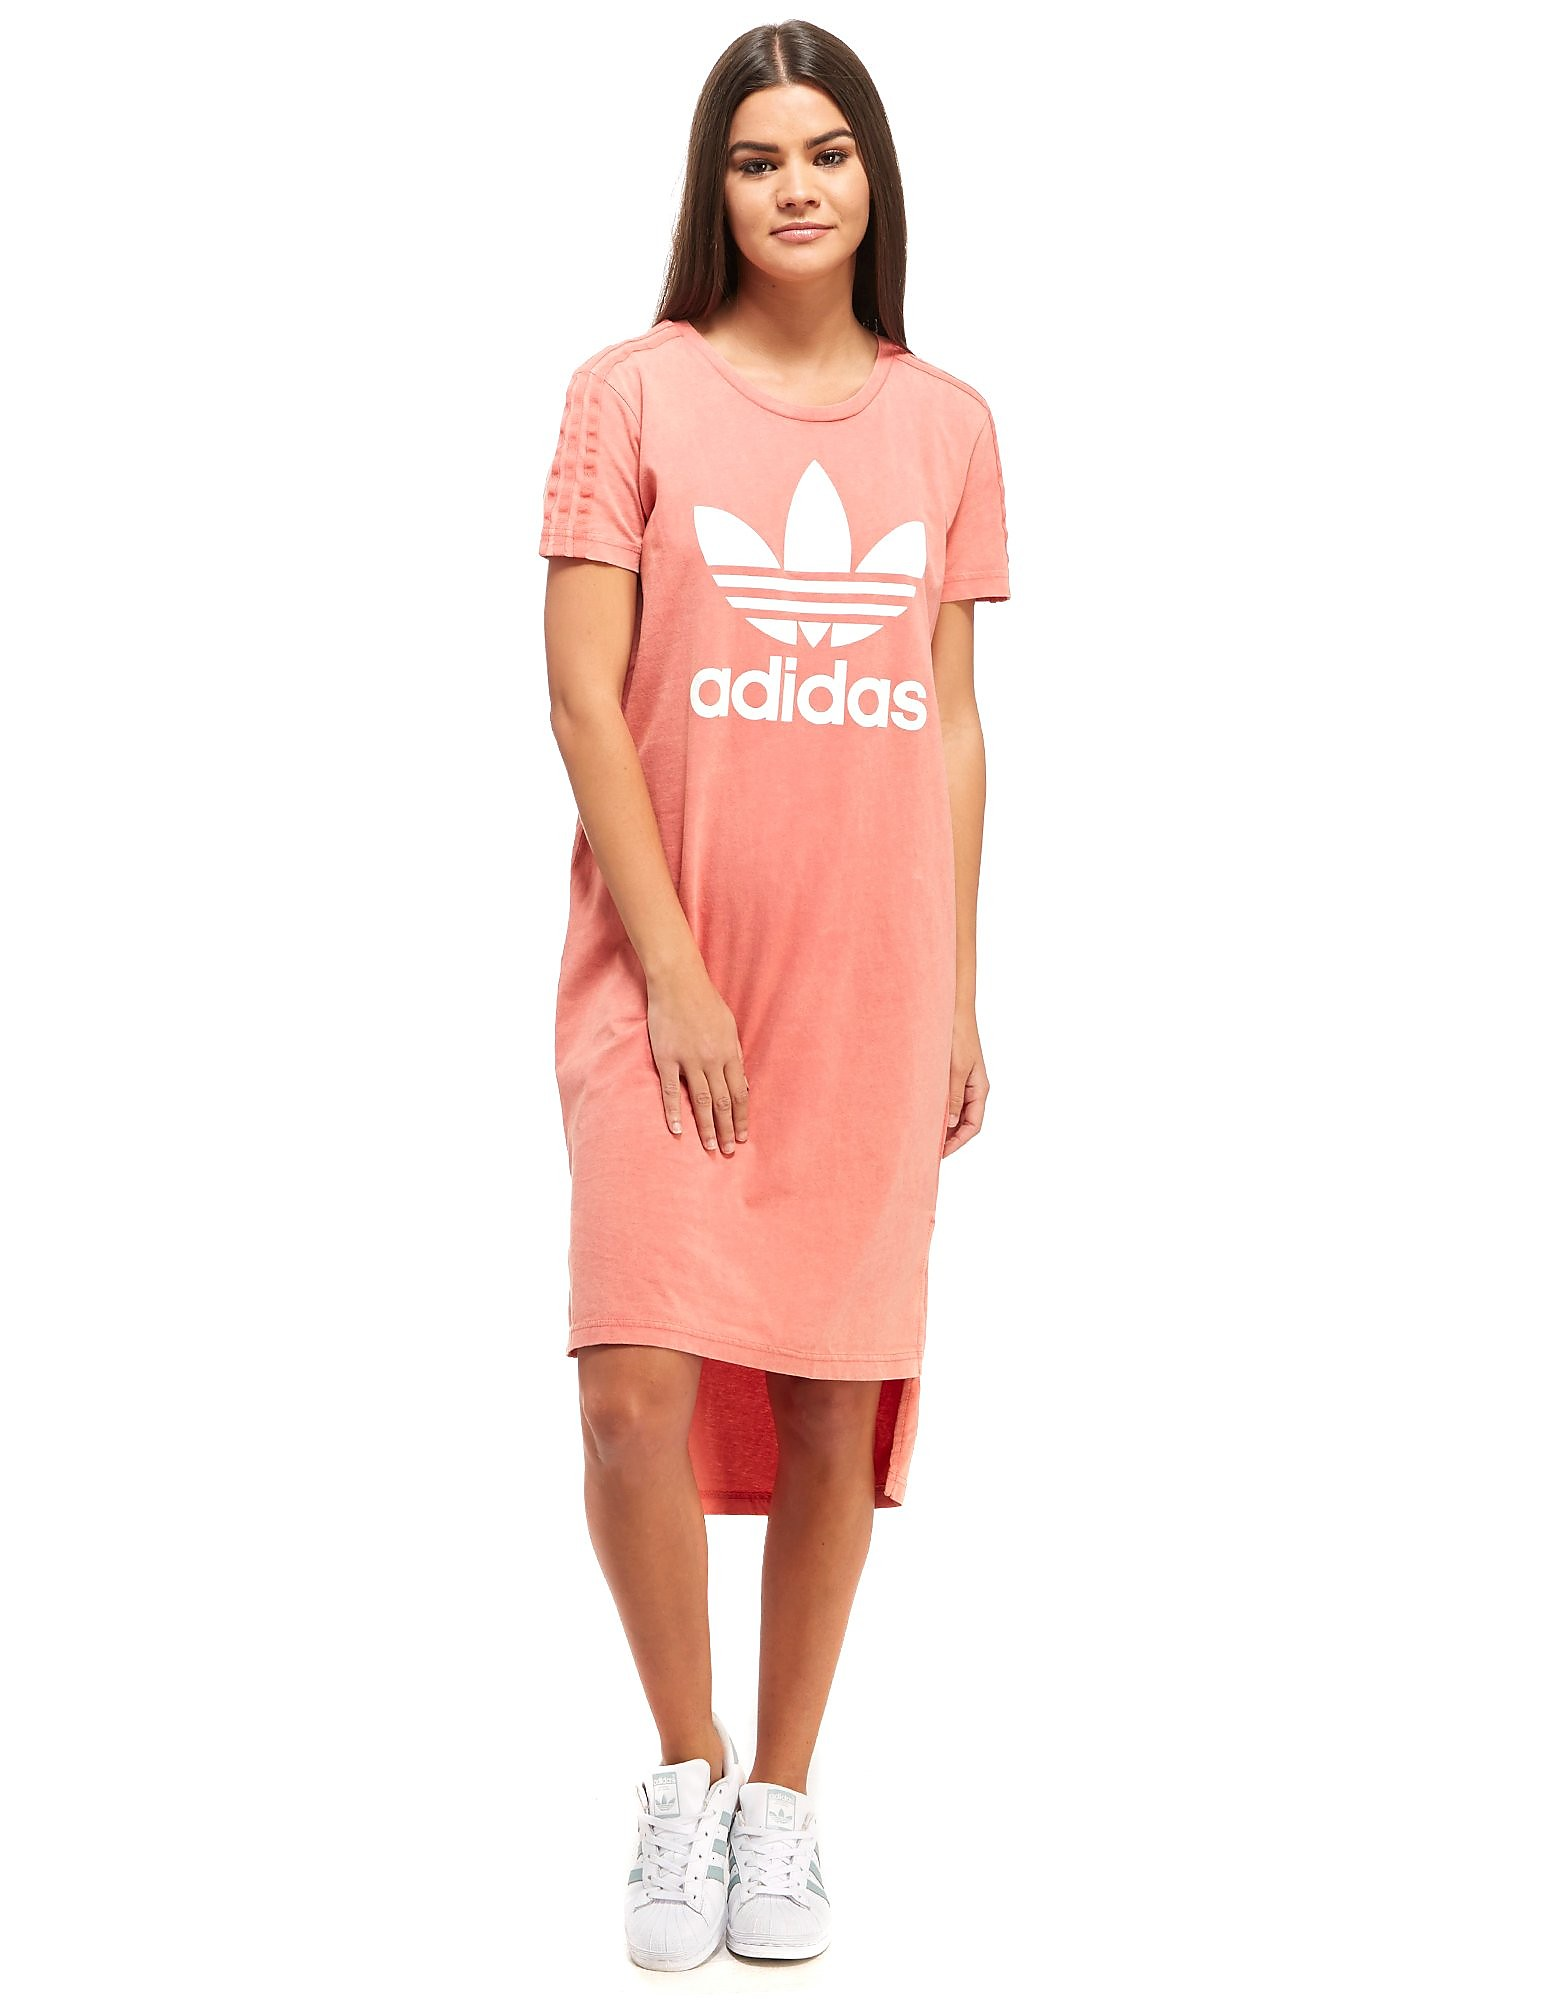 adidas Originals Ocean Elements Washed T-Shirt Dress